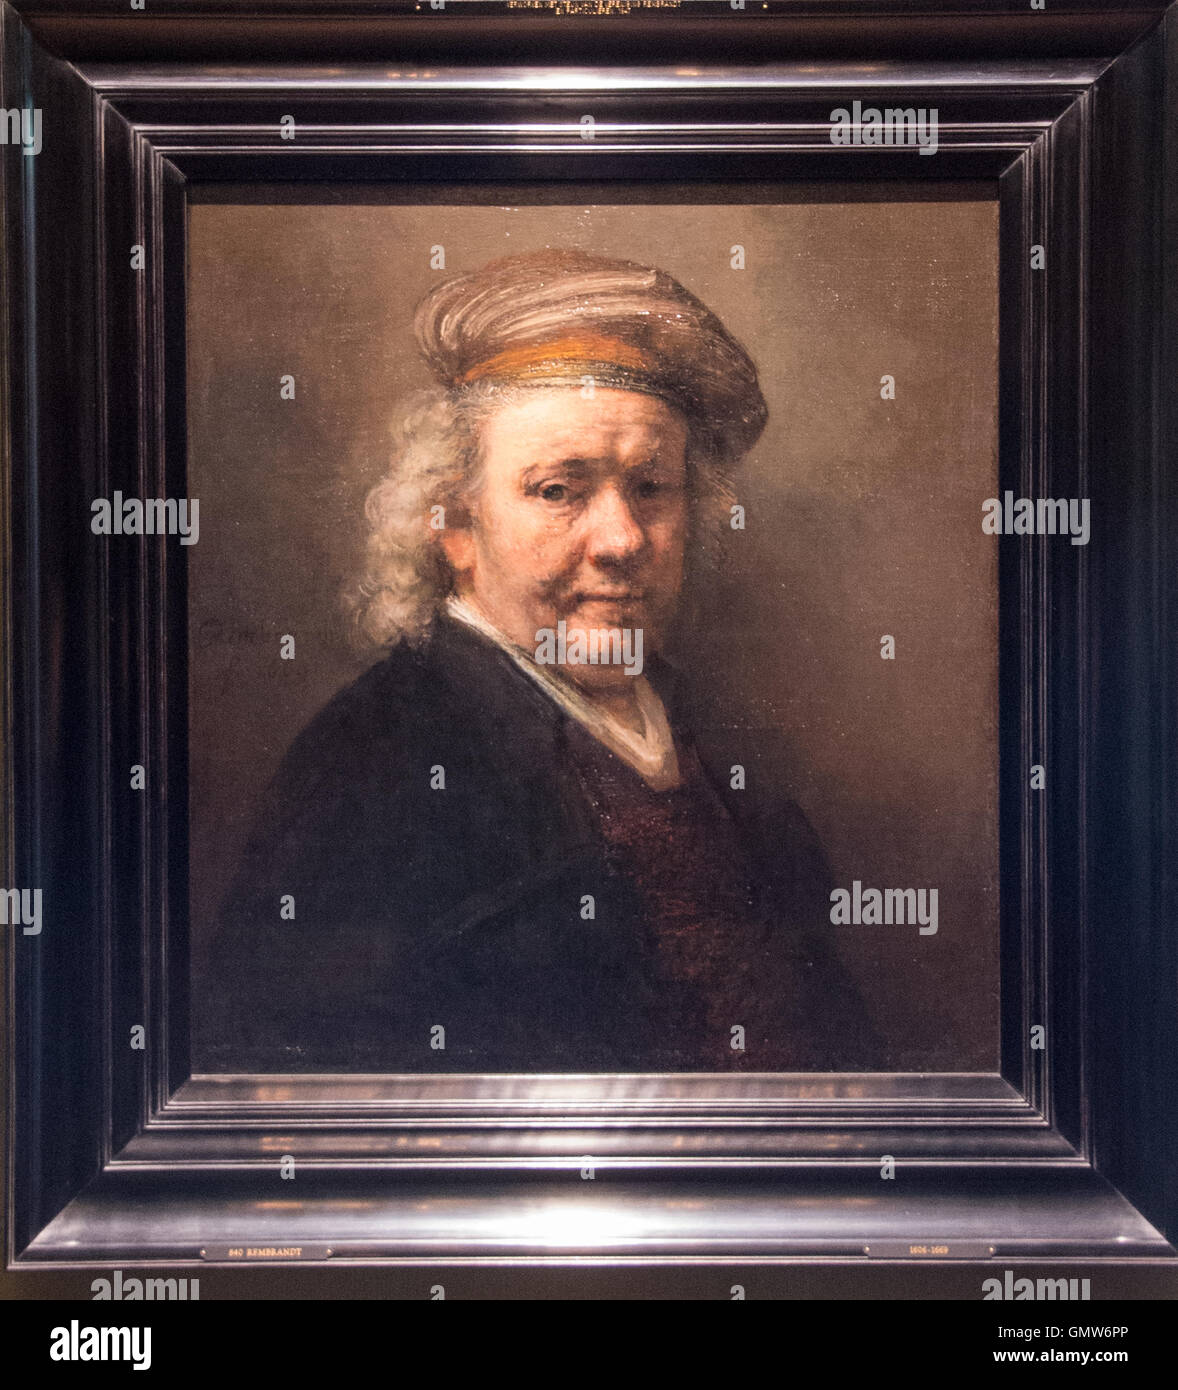 'selfportrait' painting from Rembrandt van Rijn at 1669 - Stock Image